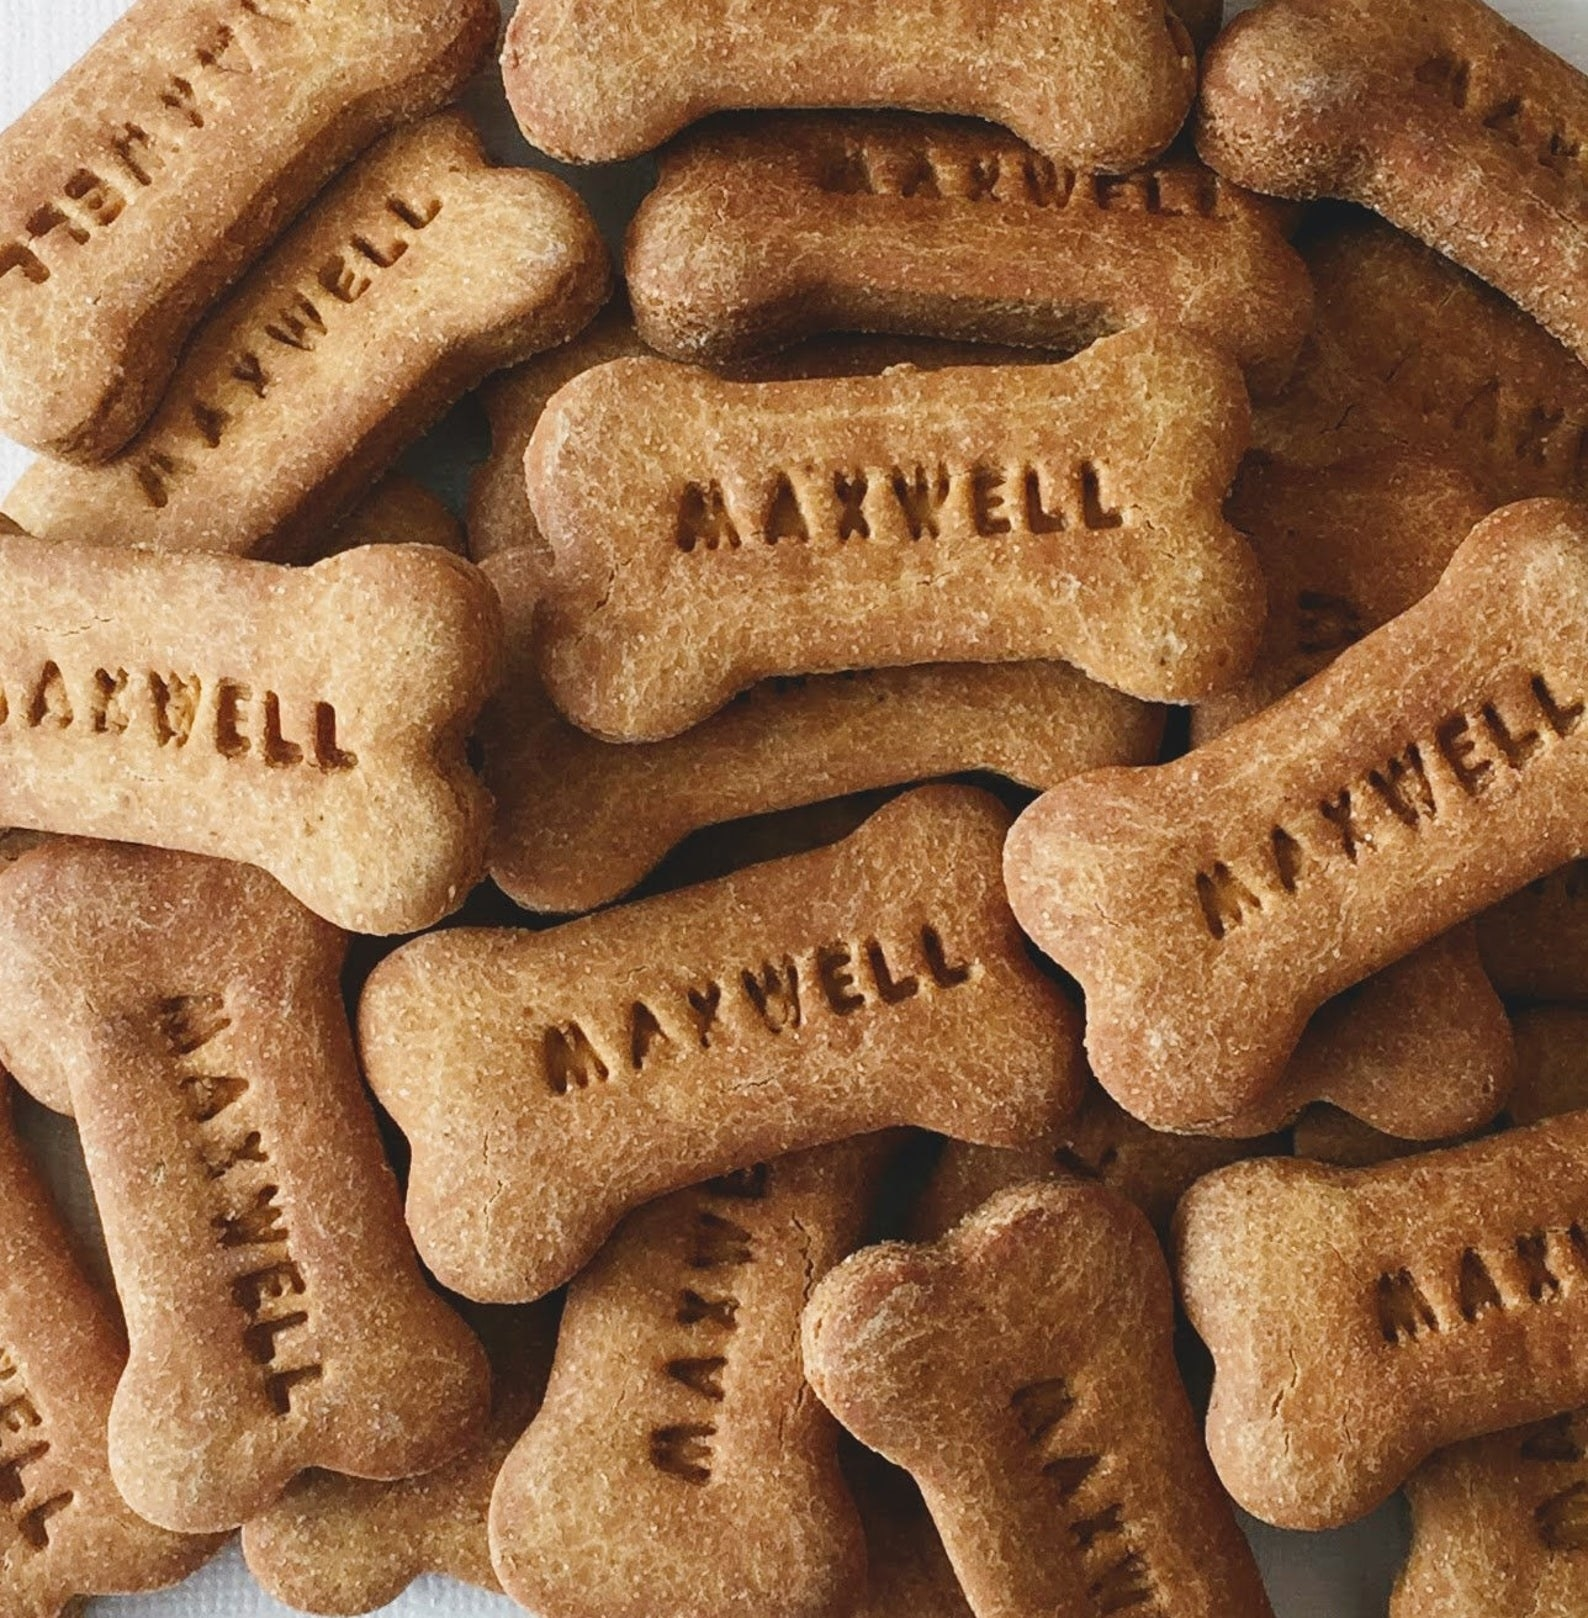 The dog bone-shaped treats with the dog's name printed on them